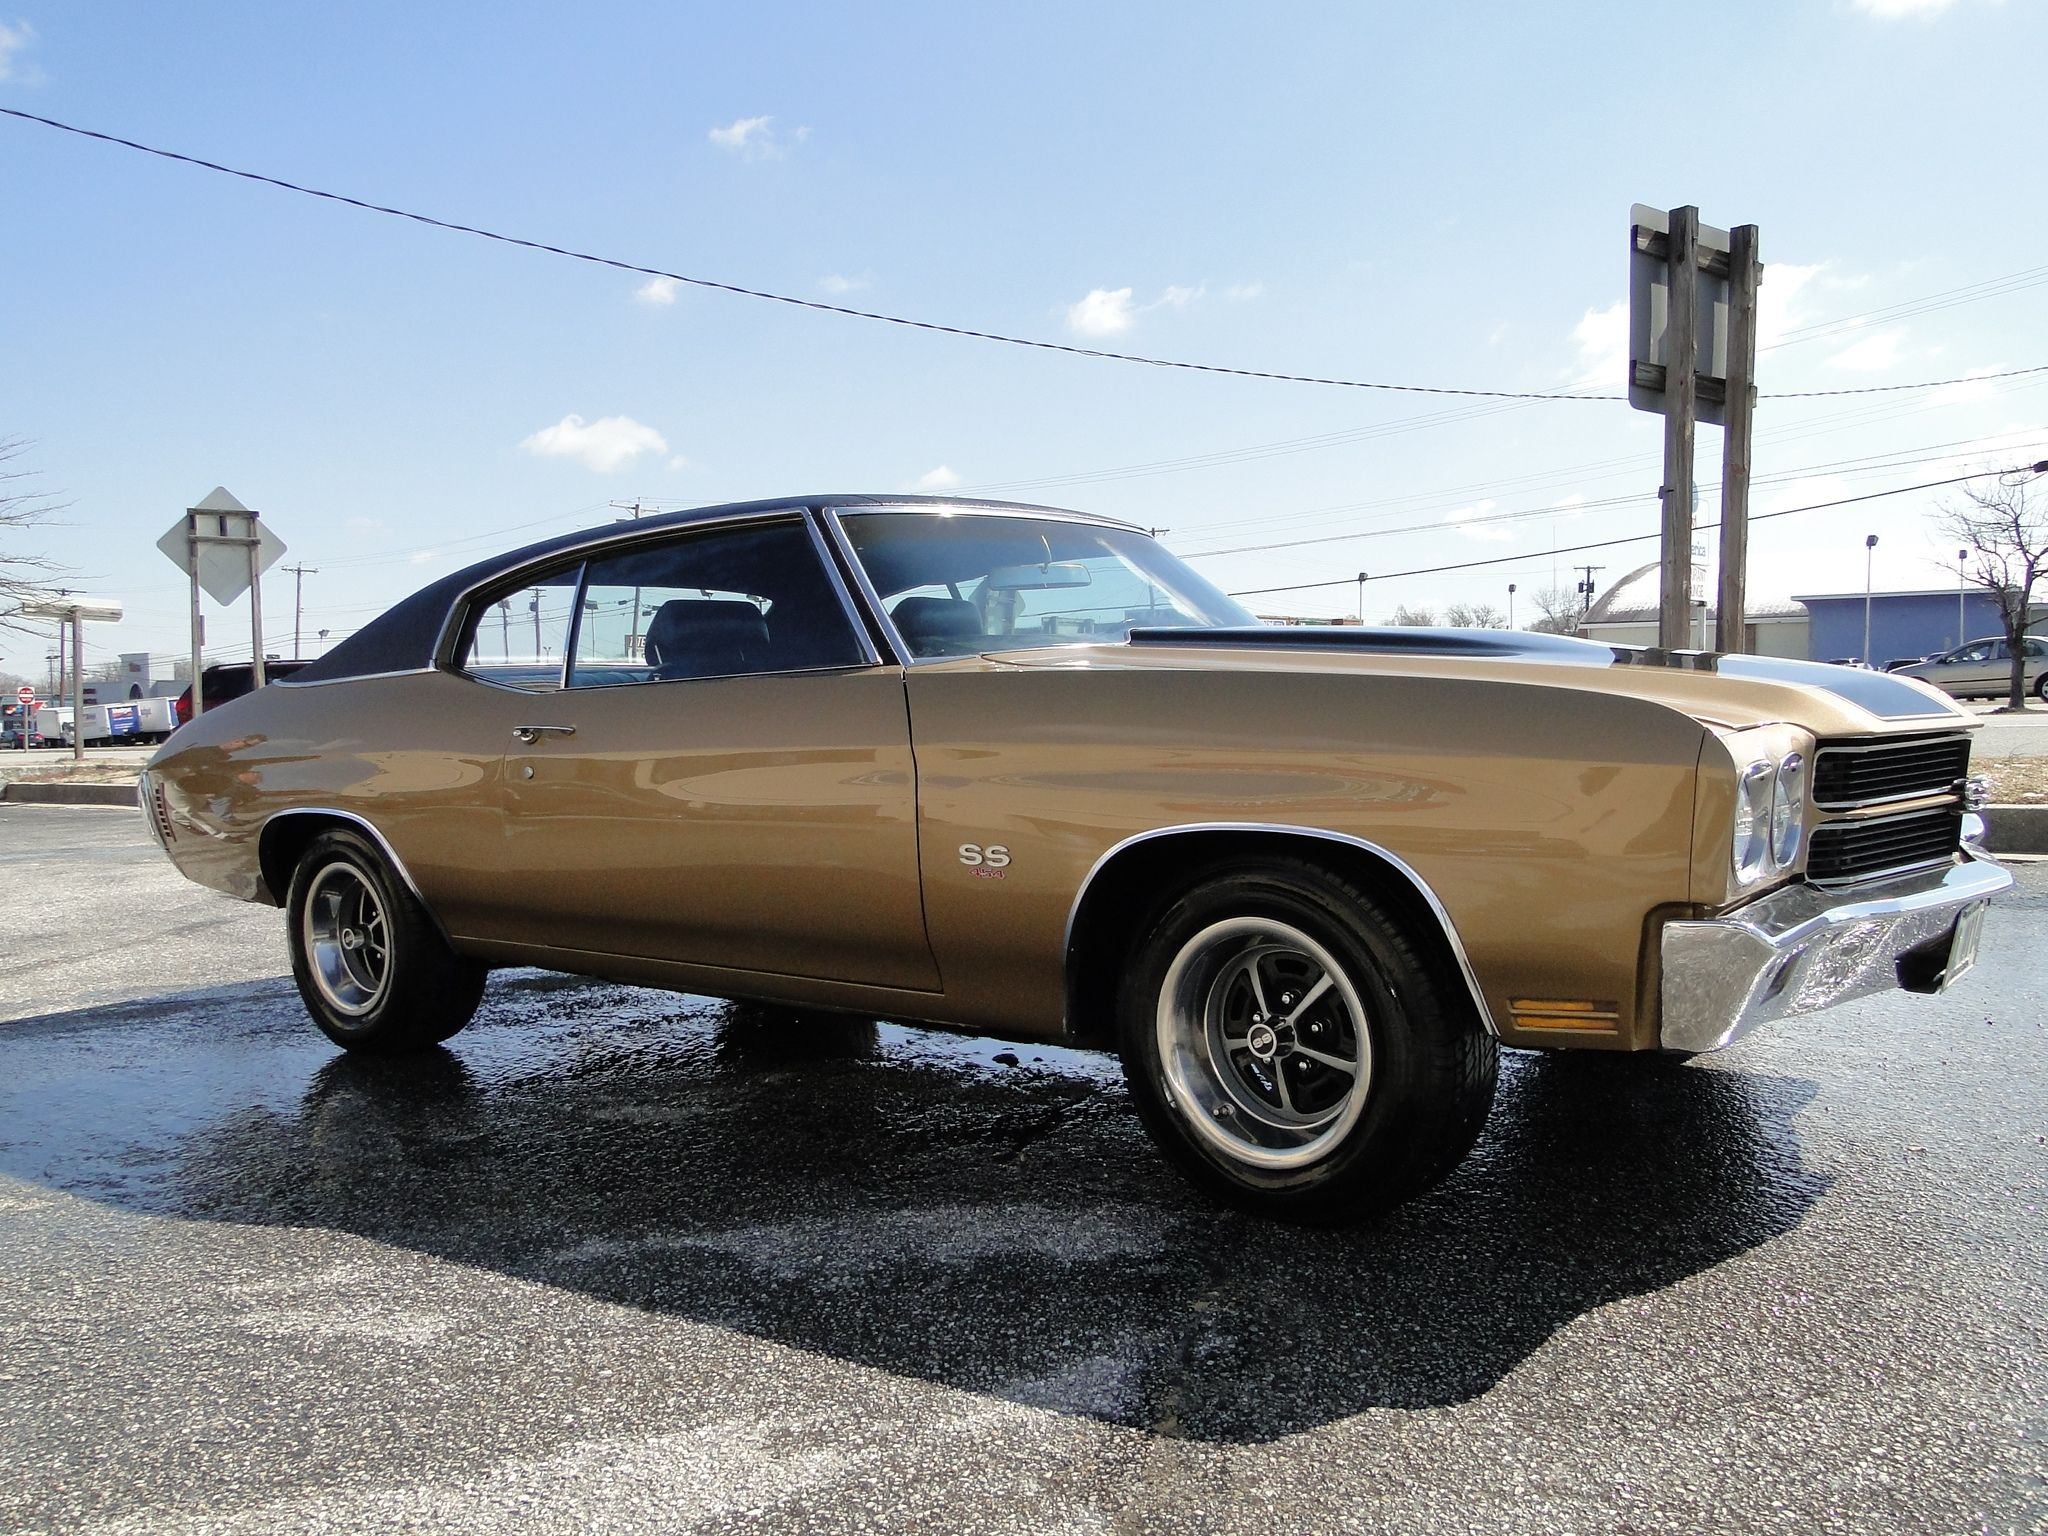 For sale 1970 real super sport chevelle has been repainted to its factory autumn gold